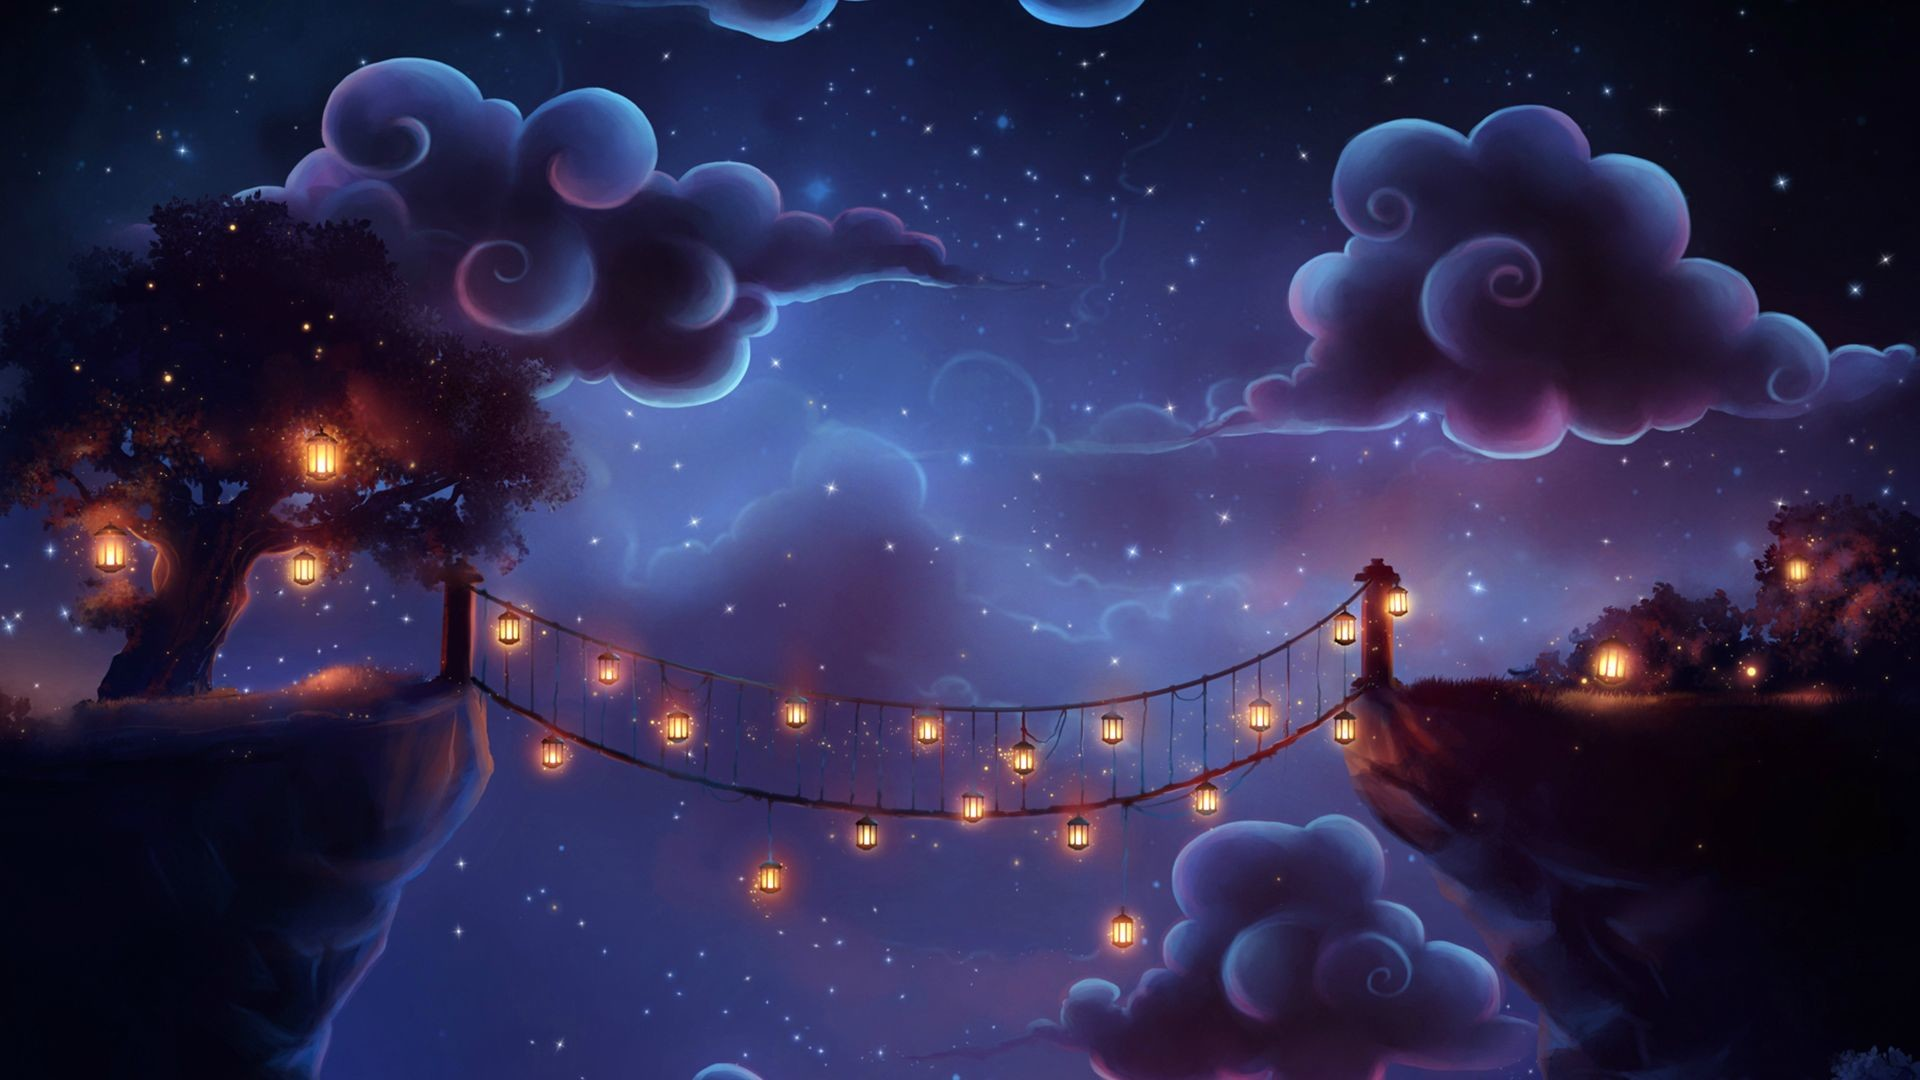 71 Tangled Floating Lanterns Desktop